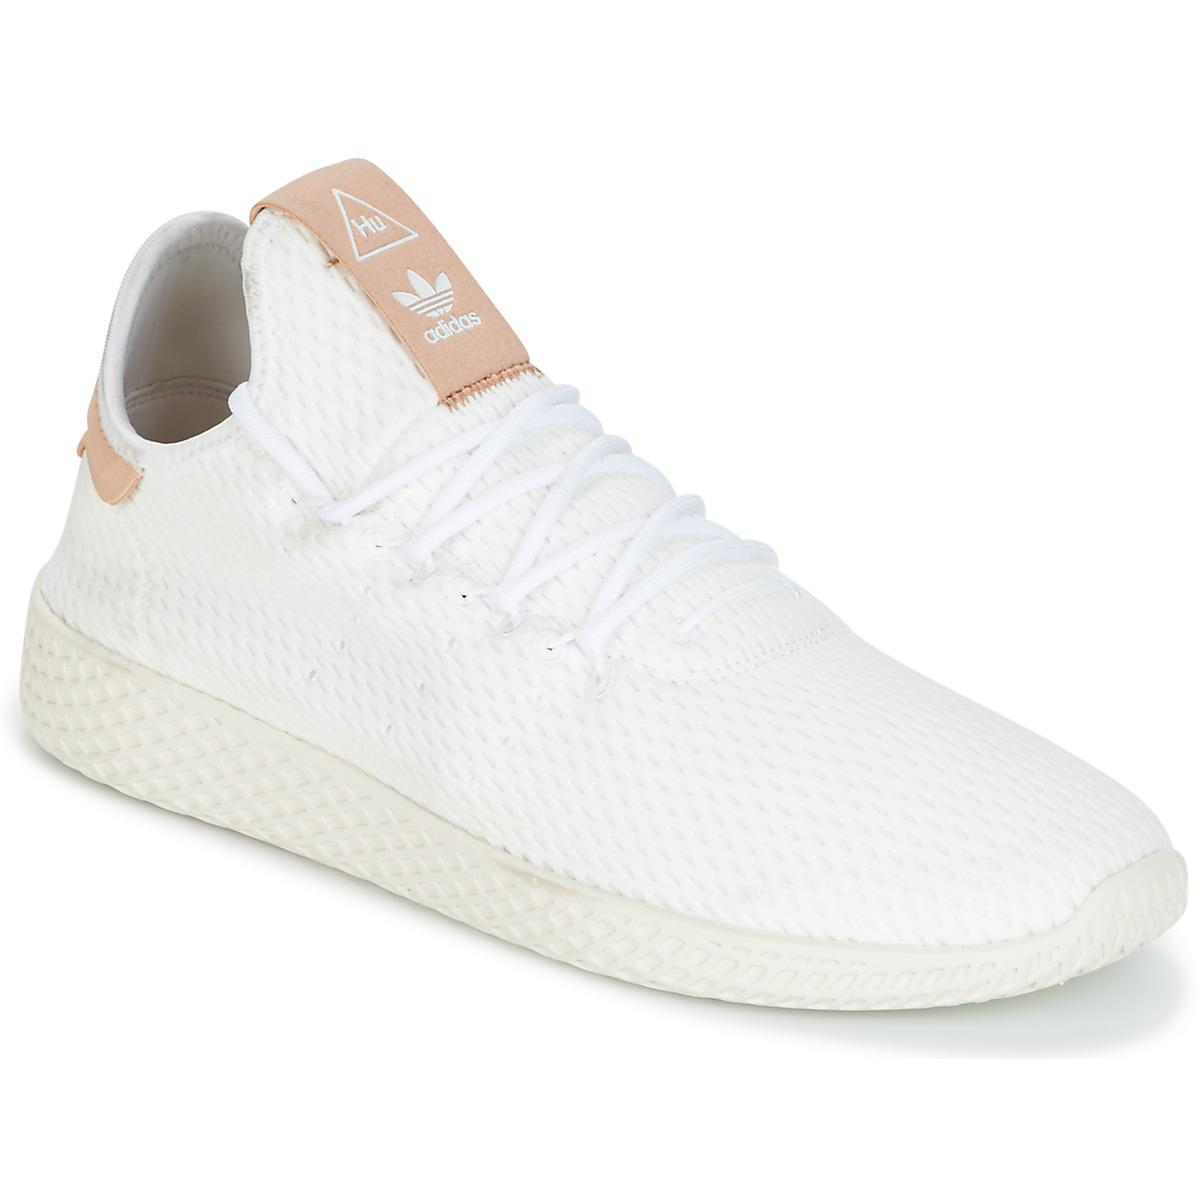 21bebfbc9c951 adidas Pharrell Williams Tennis Hu Women s Shoes (trainers) In White ...